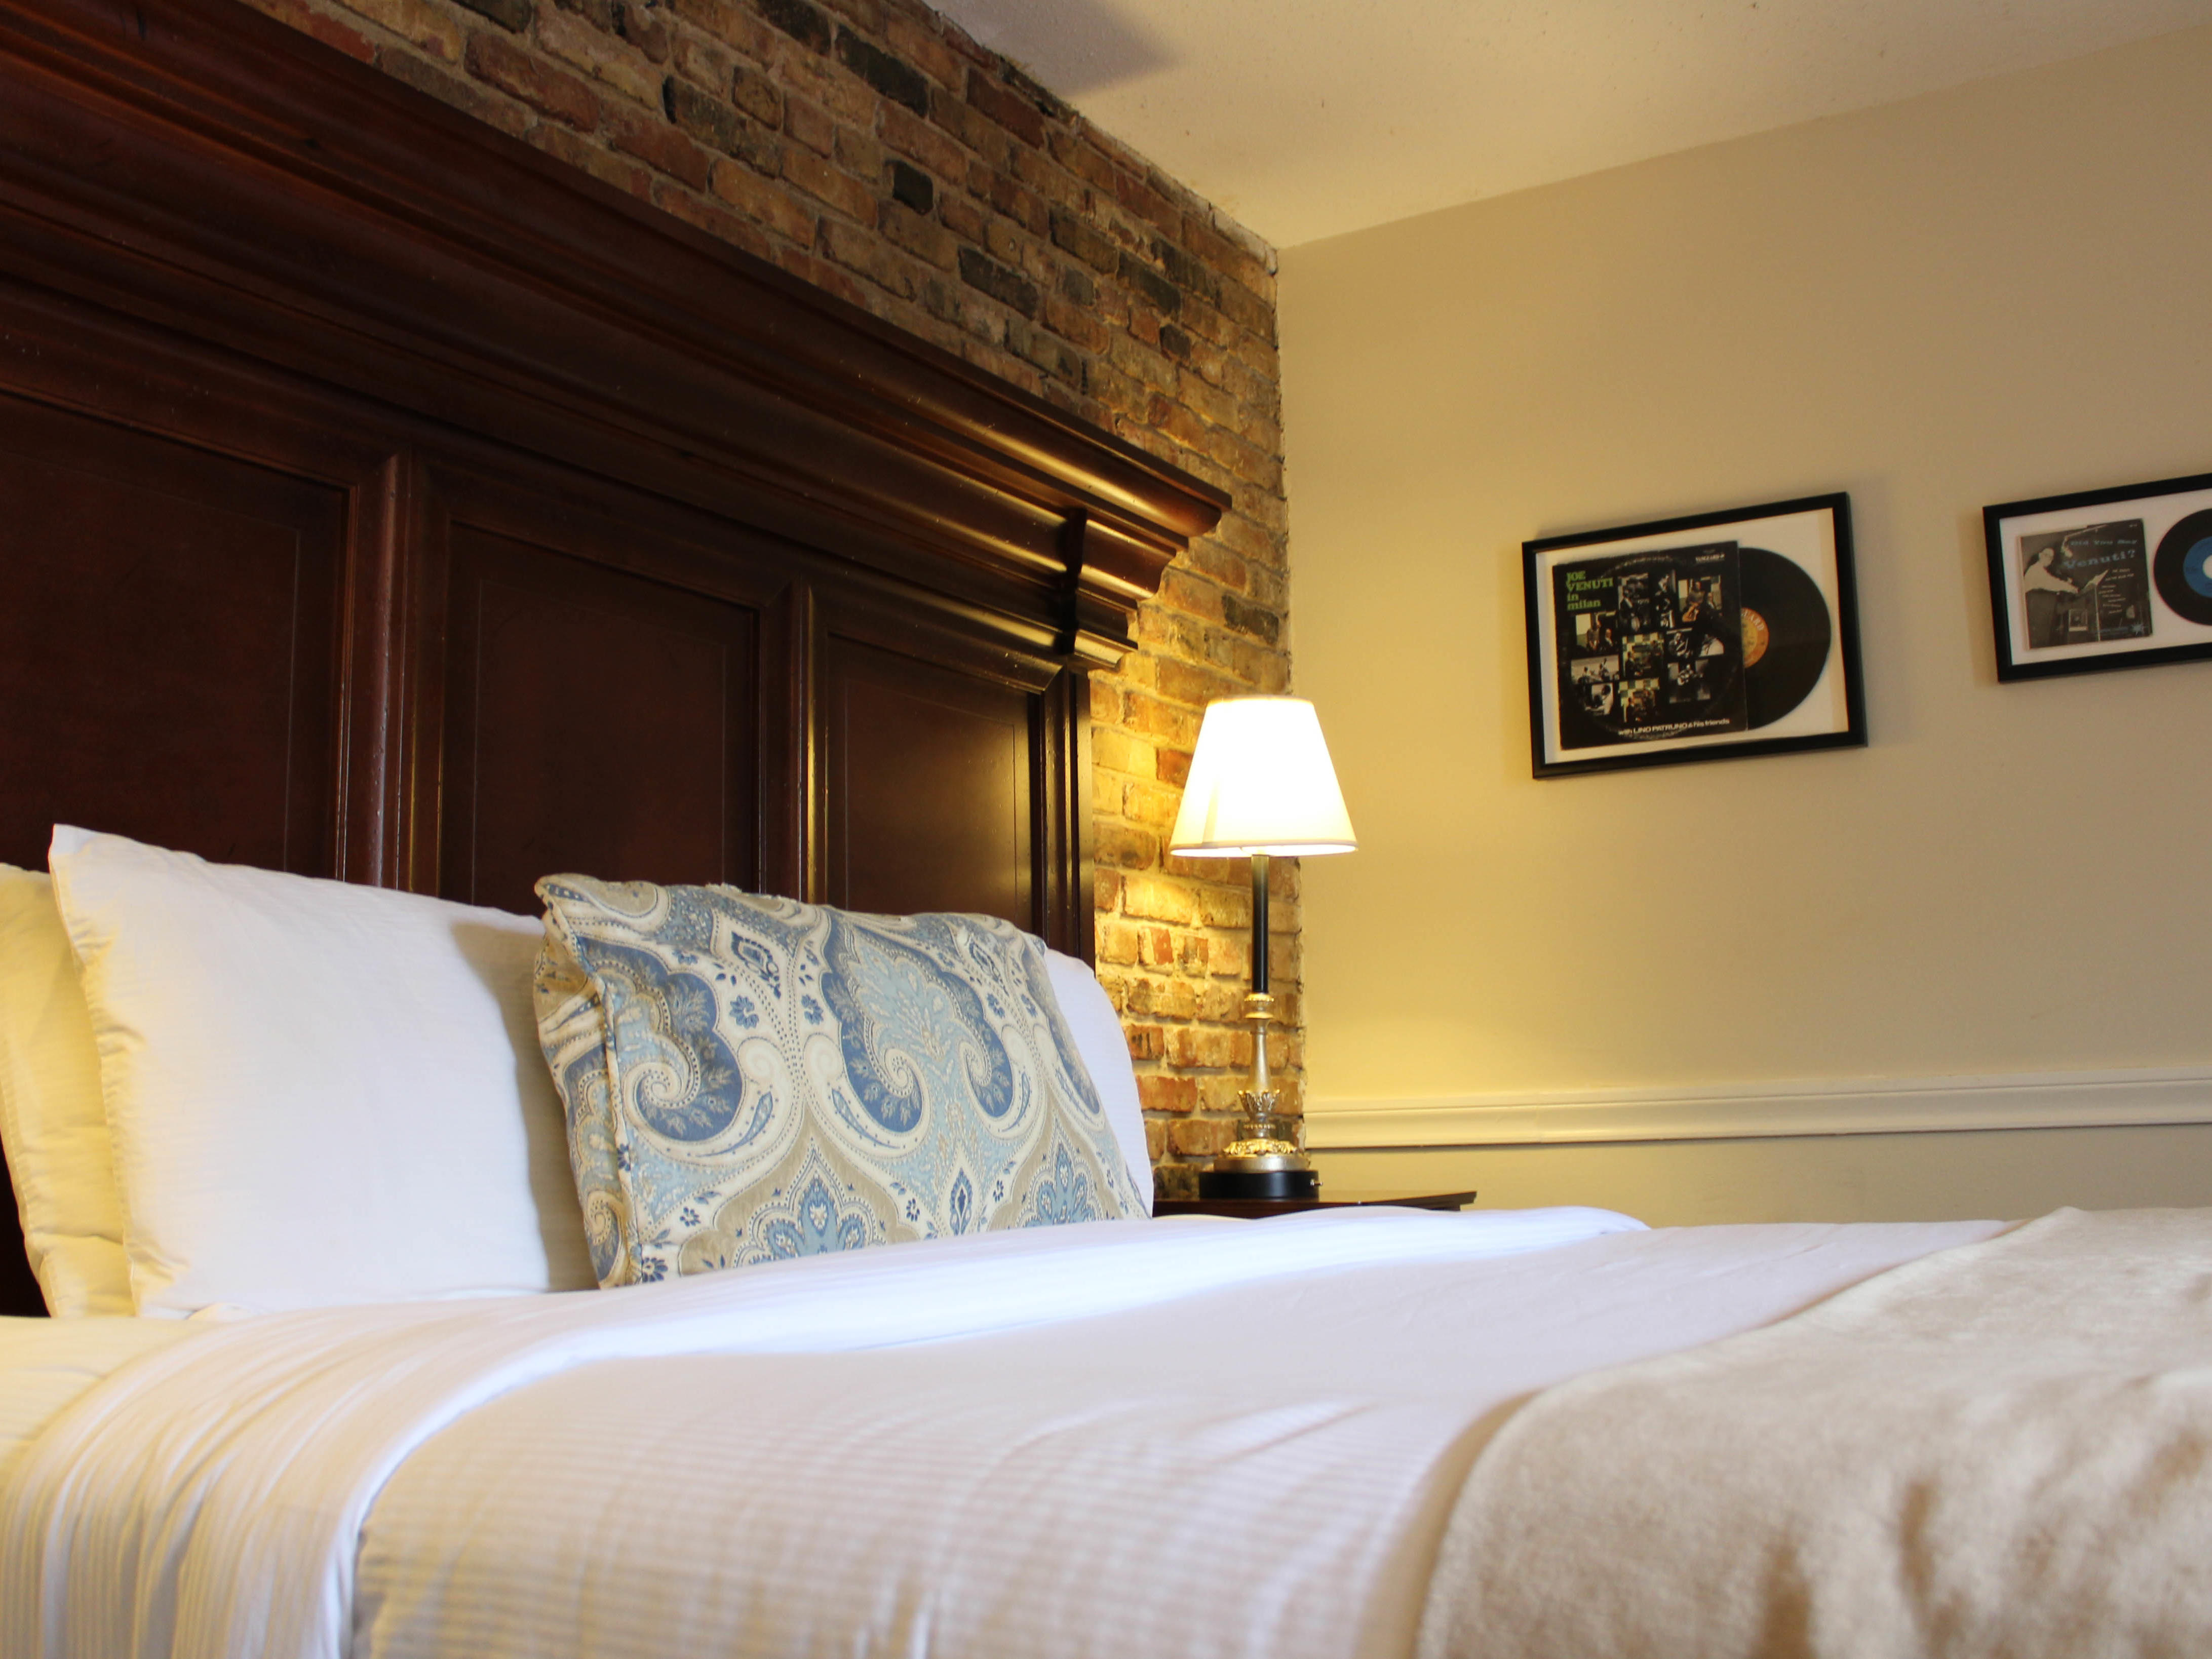 One Double Bed Room with one bed at Hotel St. Pierre